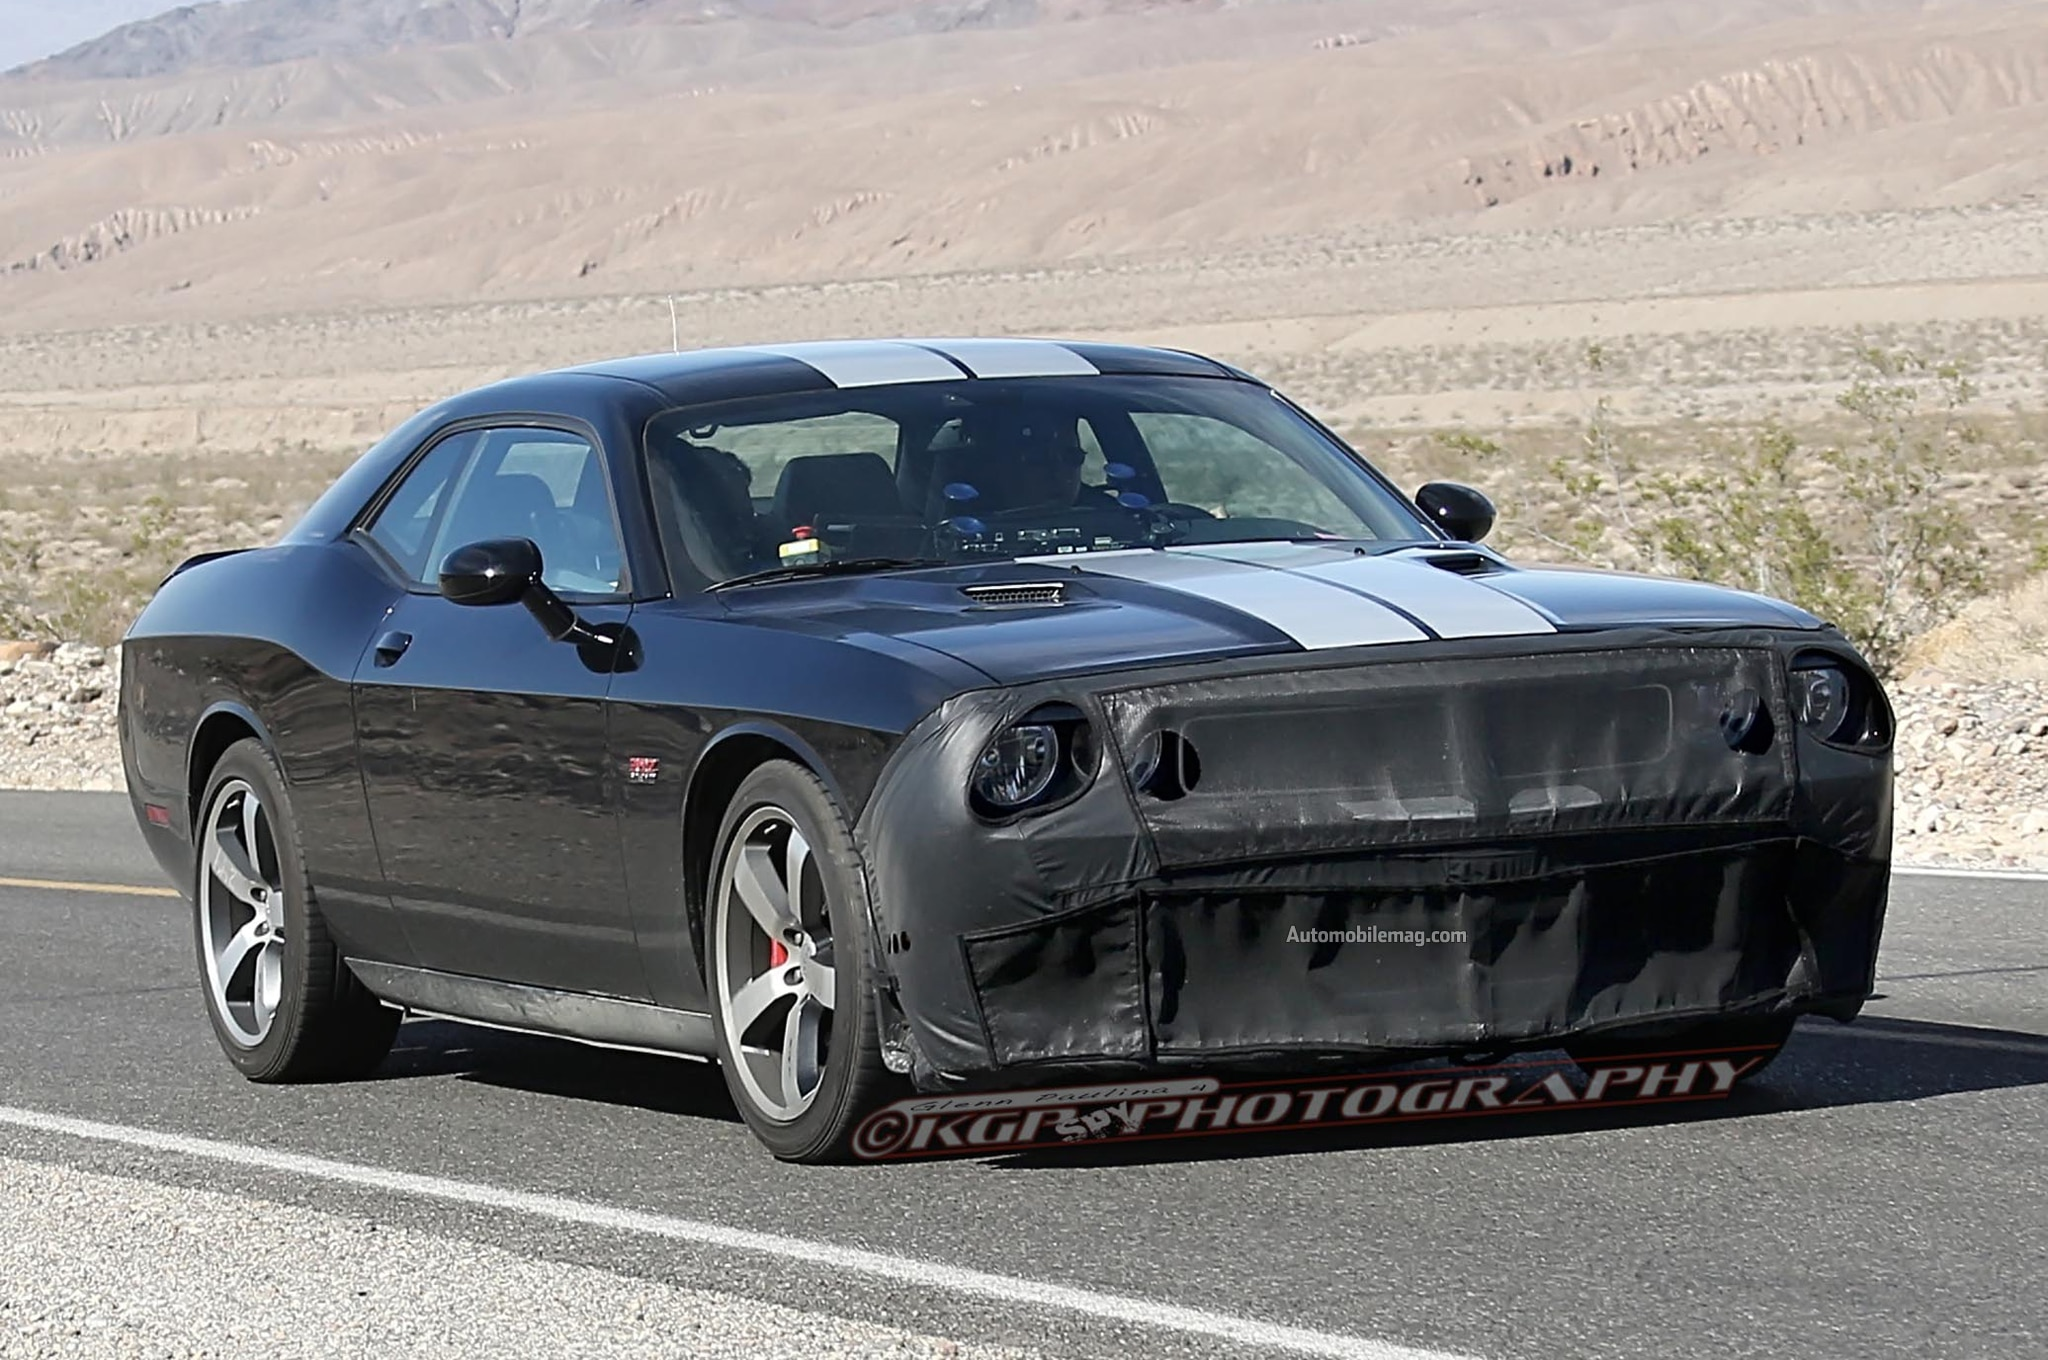 Supercharged Dodge Challenger Srt8 Hellcat Spied